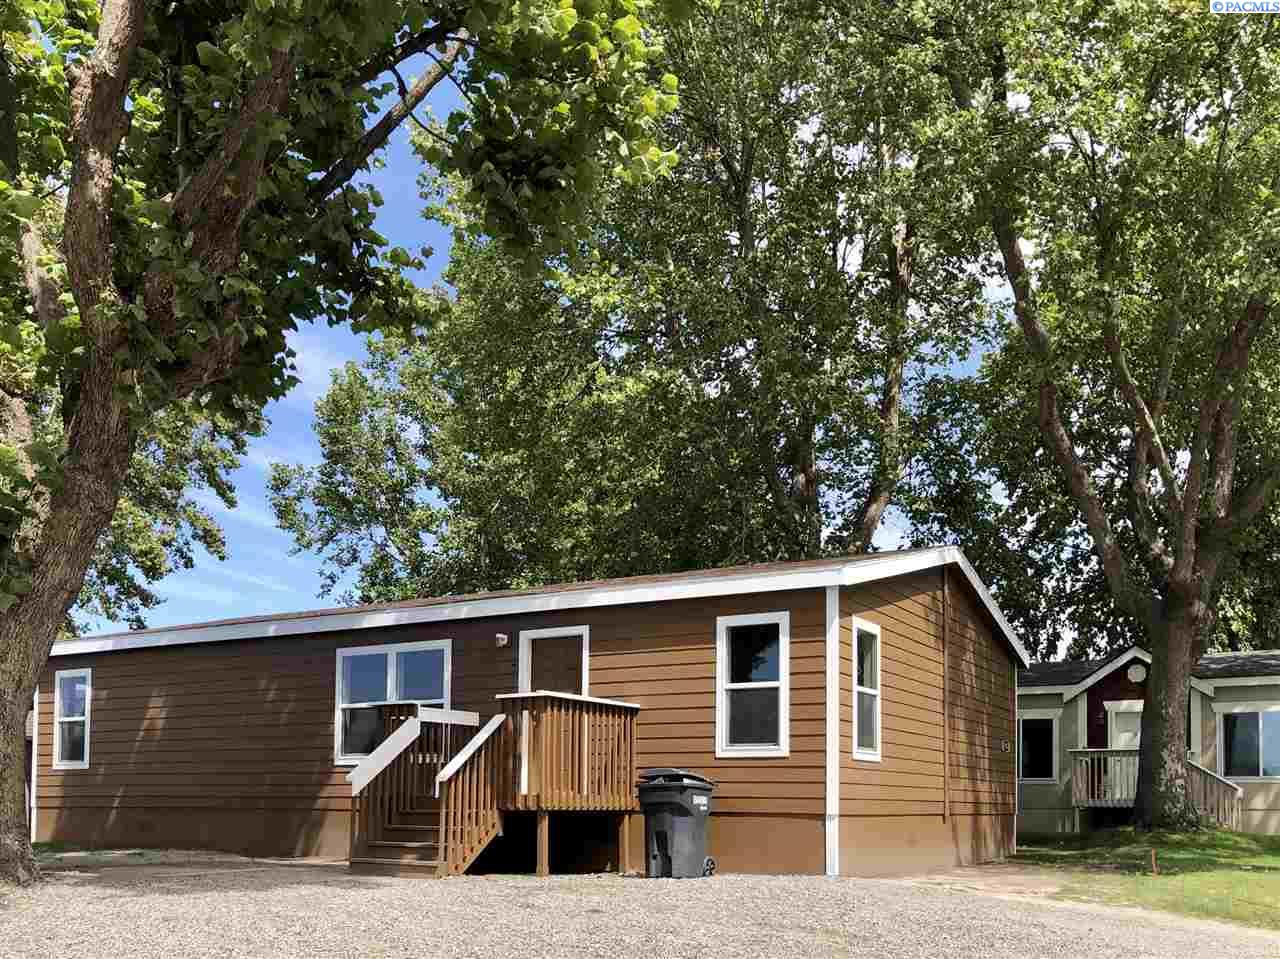 Manufactured Home for Sale at 3517 Road 84 Pasco, Washington 99301 United States